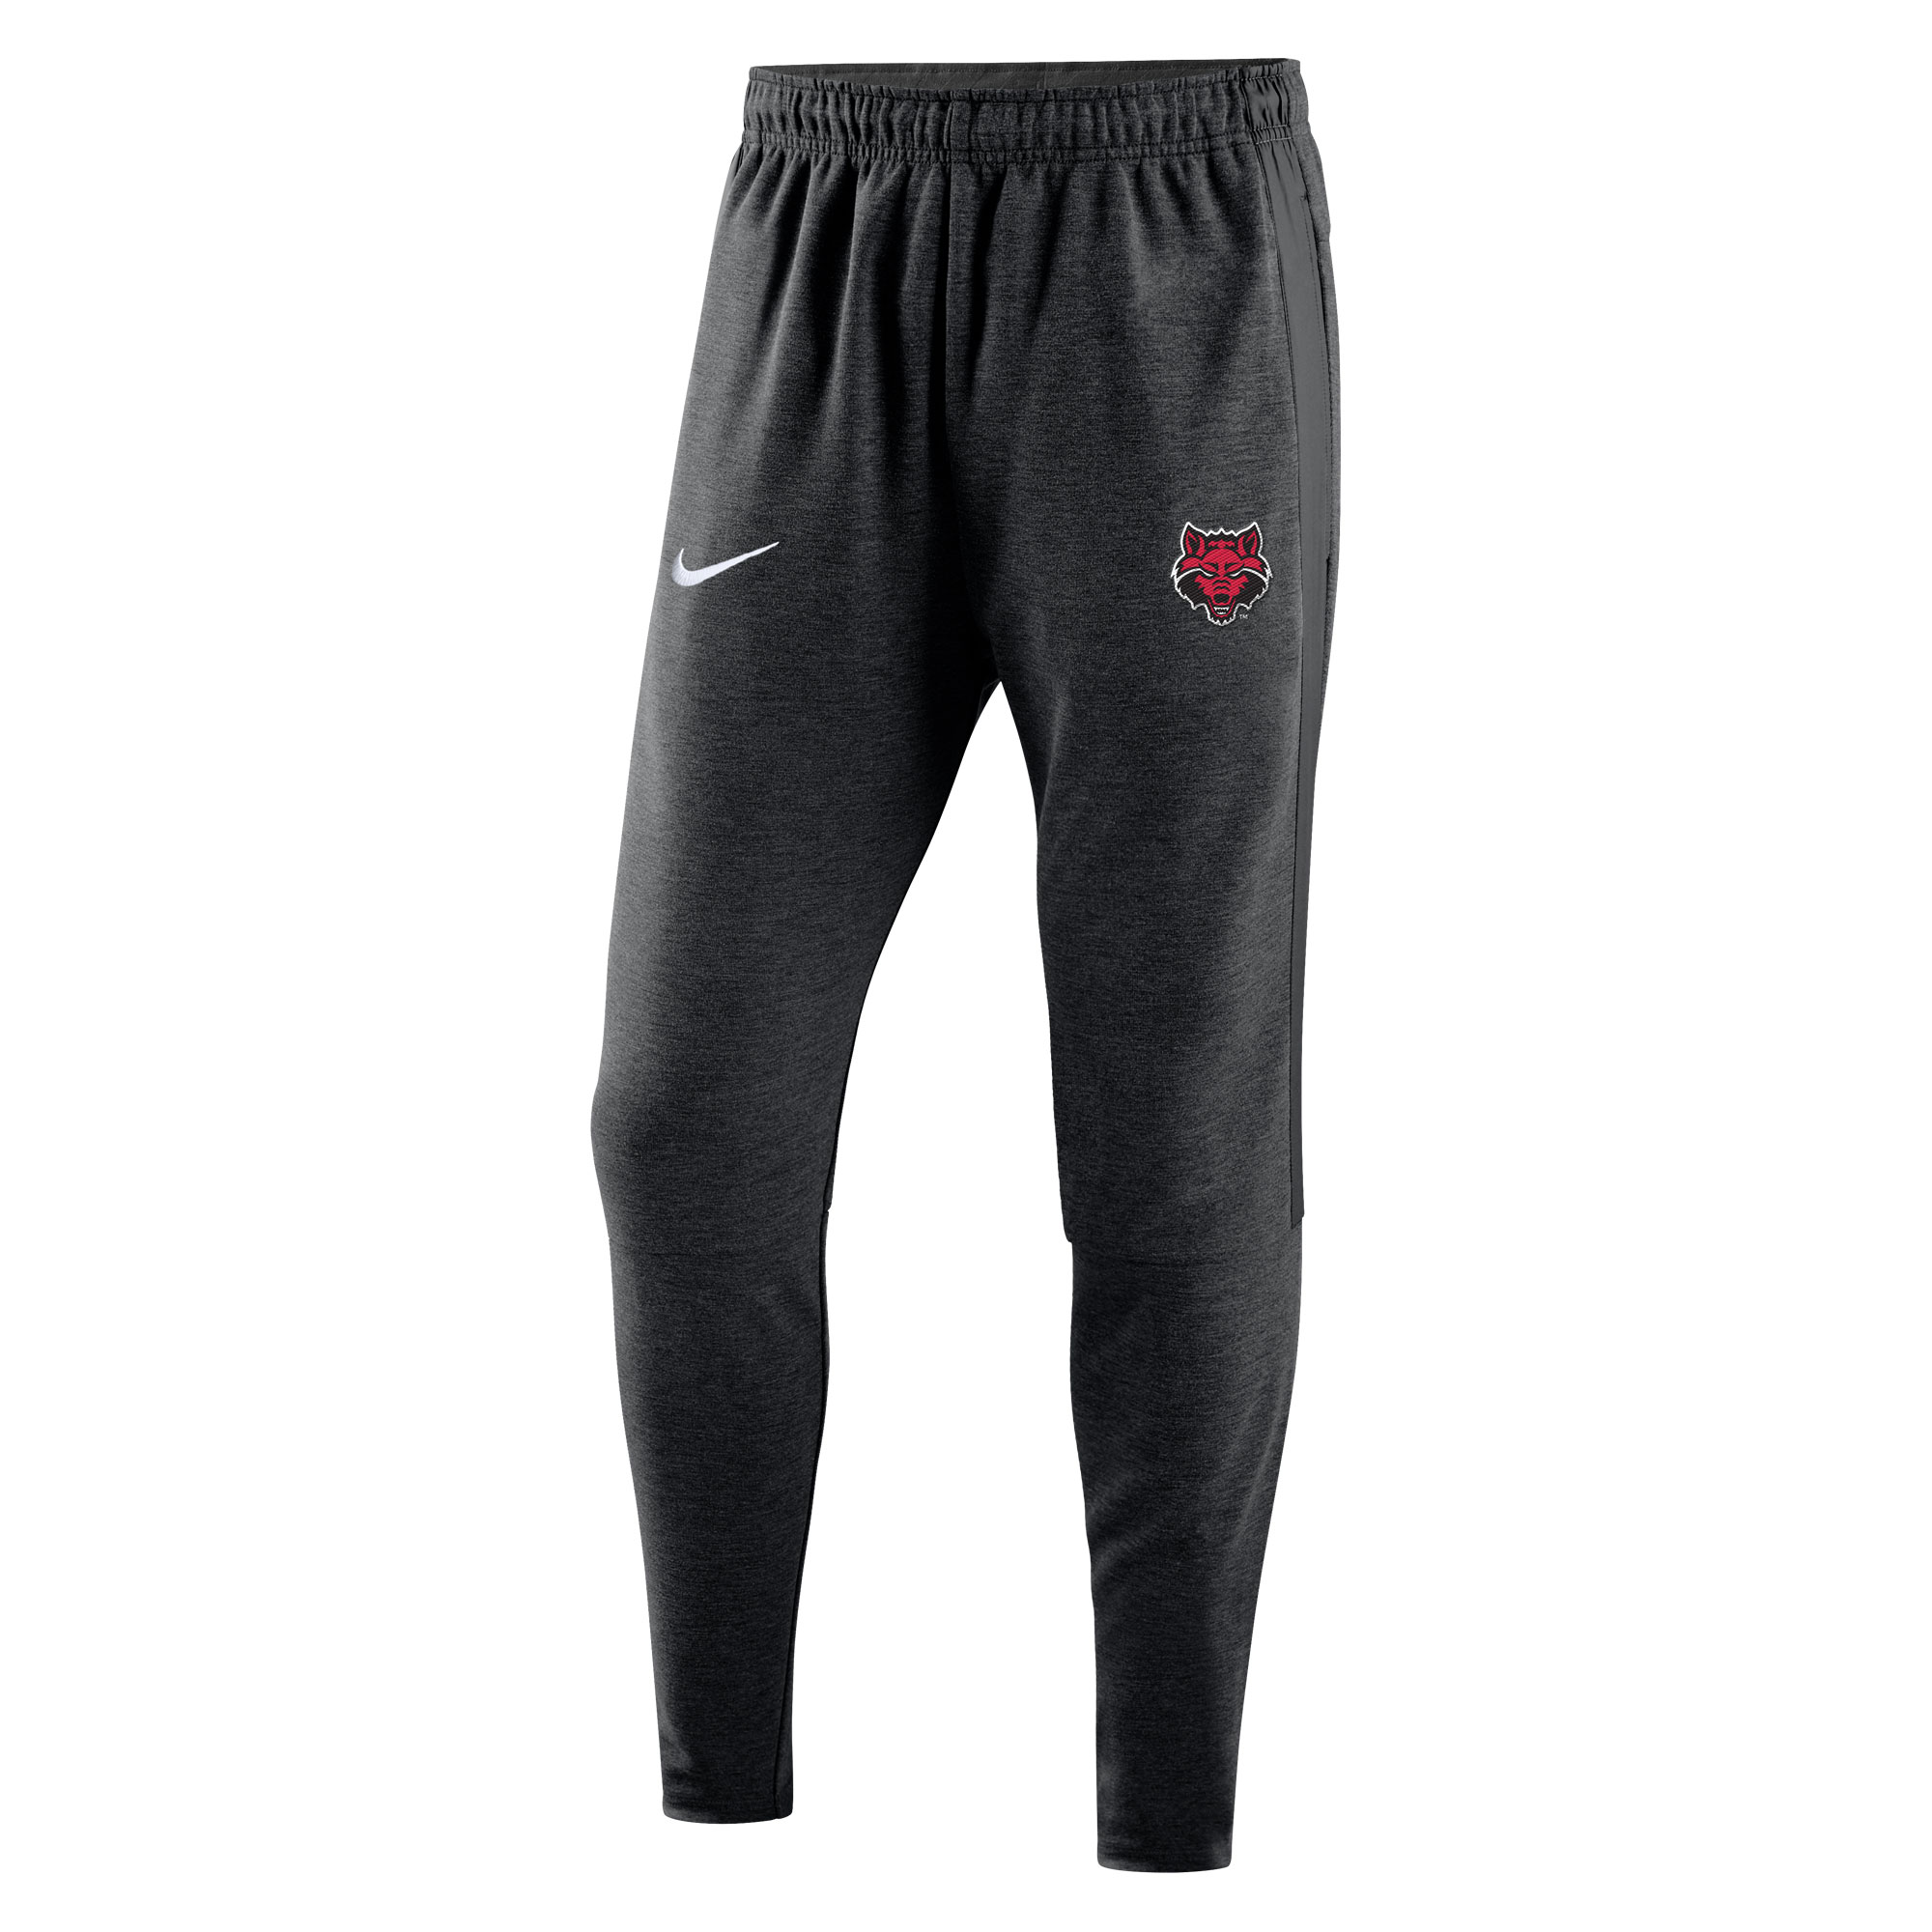 Red Wolves Travel Pants